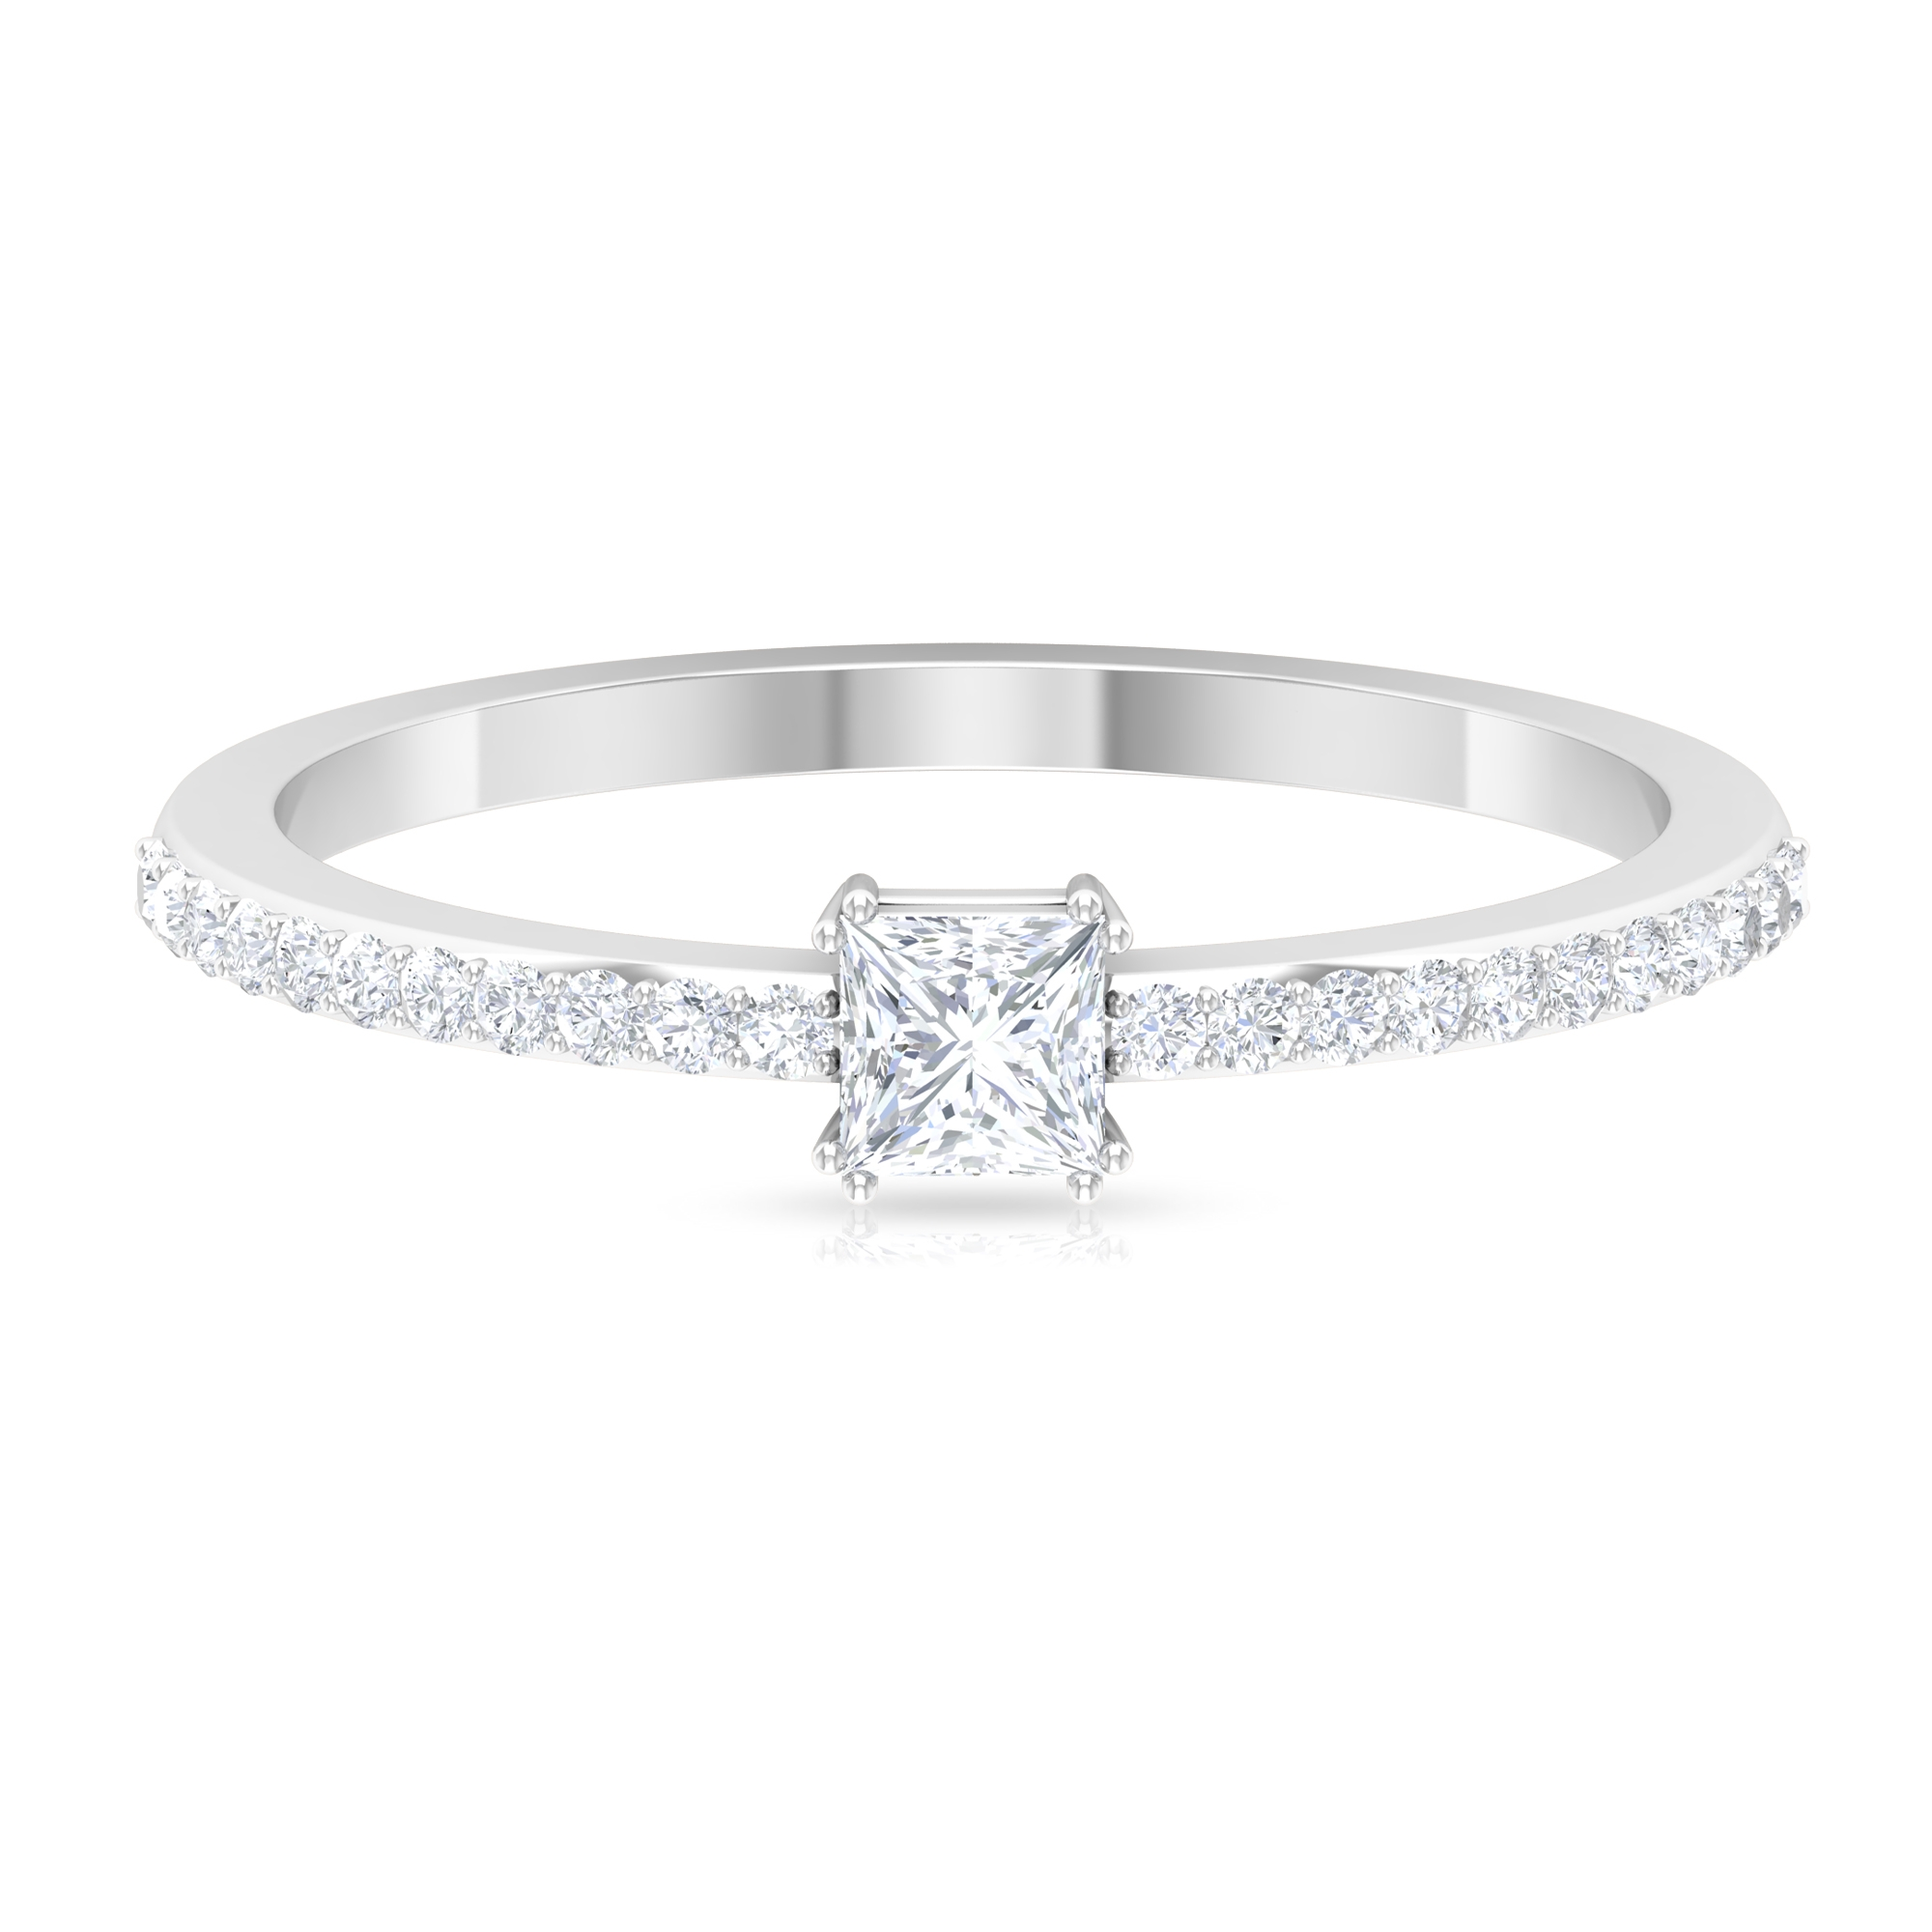 1/2 CT Princess Cut Solitaire Diamond Ring in Double Prong Setting with Surface Prong Set Diamond